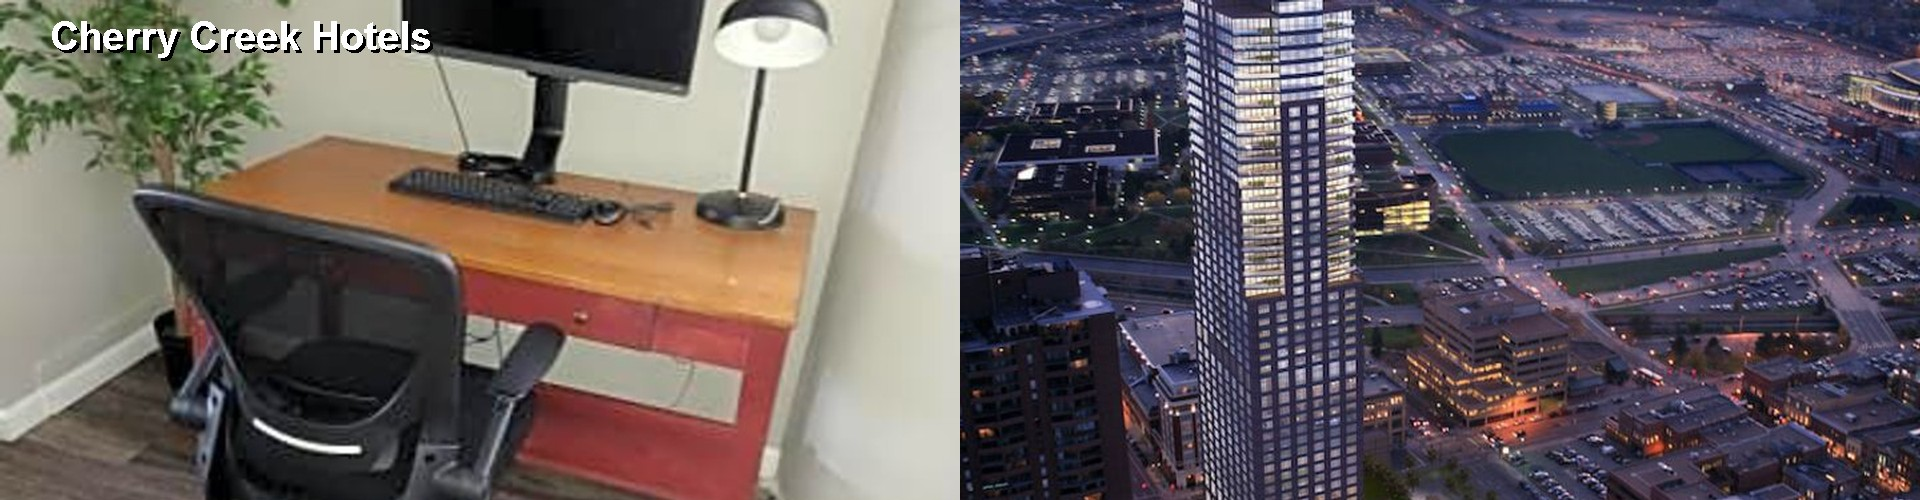 5 Best Hotels near Cherry Creek